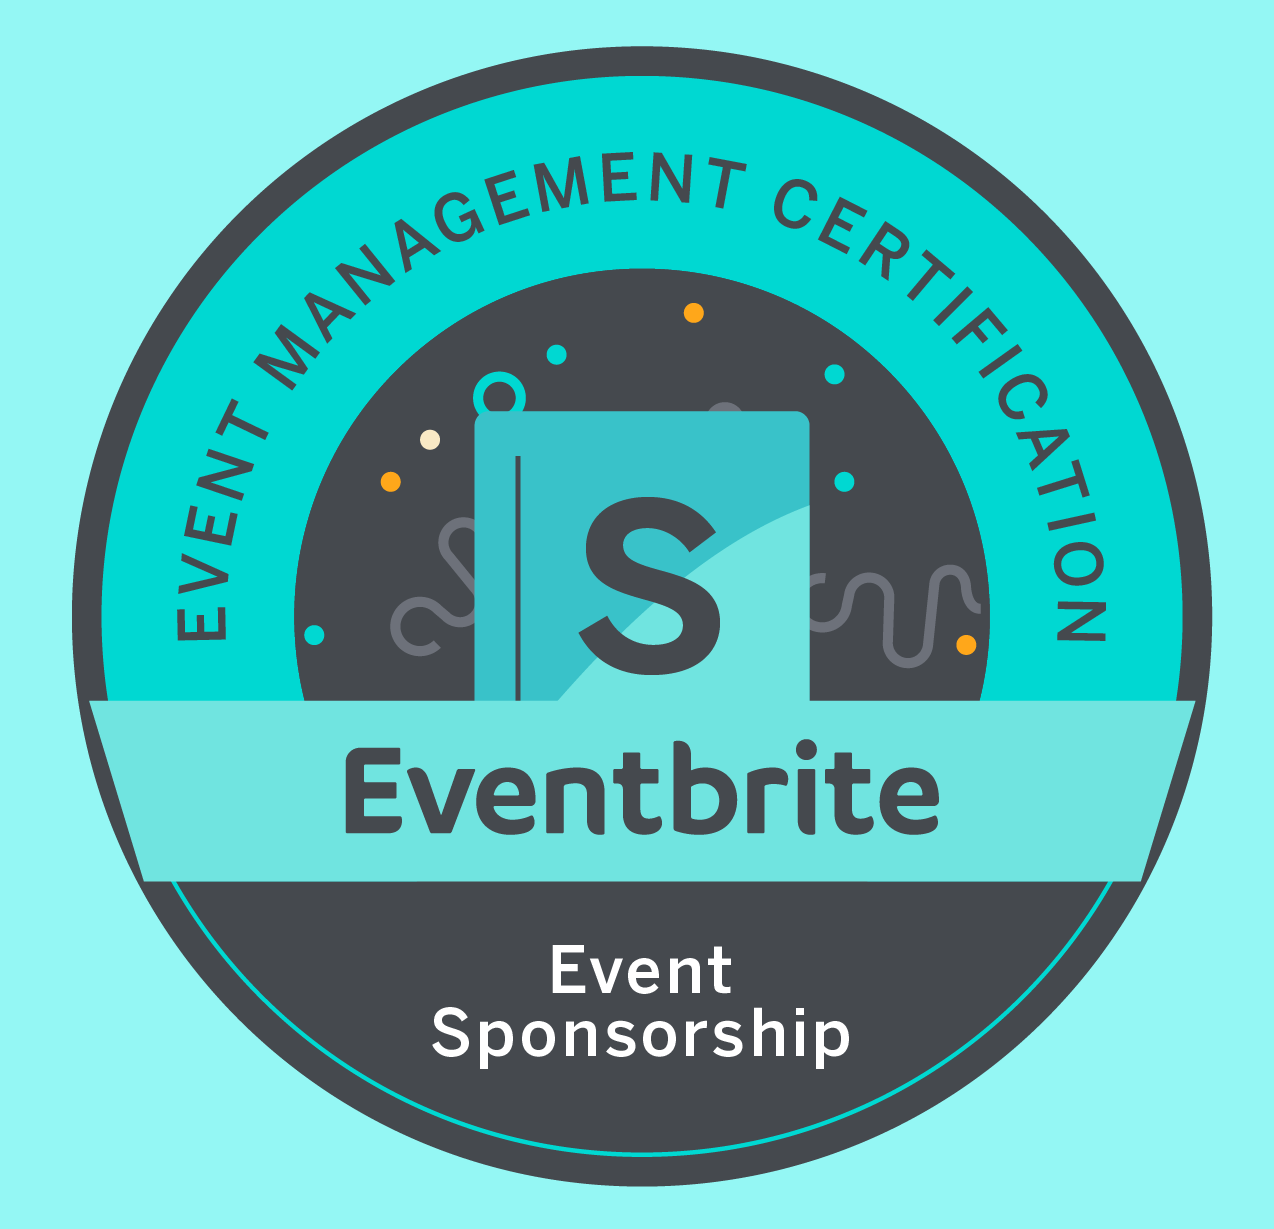 Free Event Management Courses And Certifications Online Eventbrite